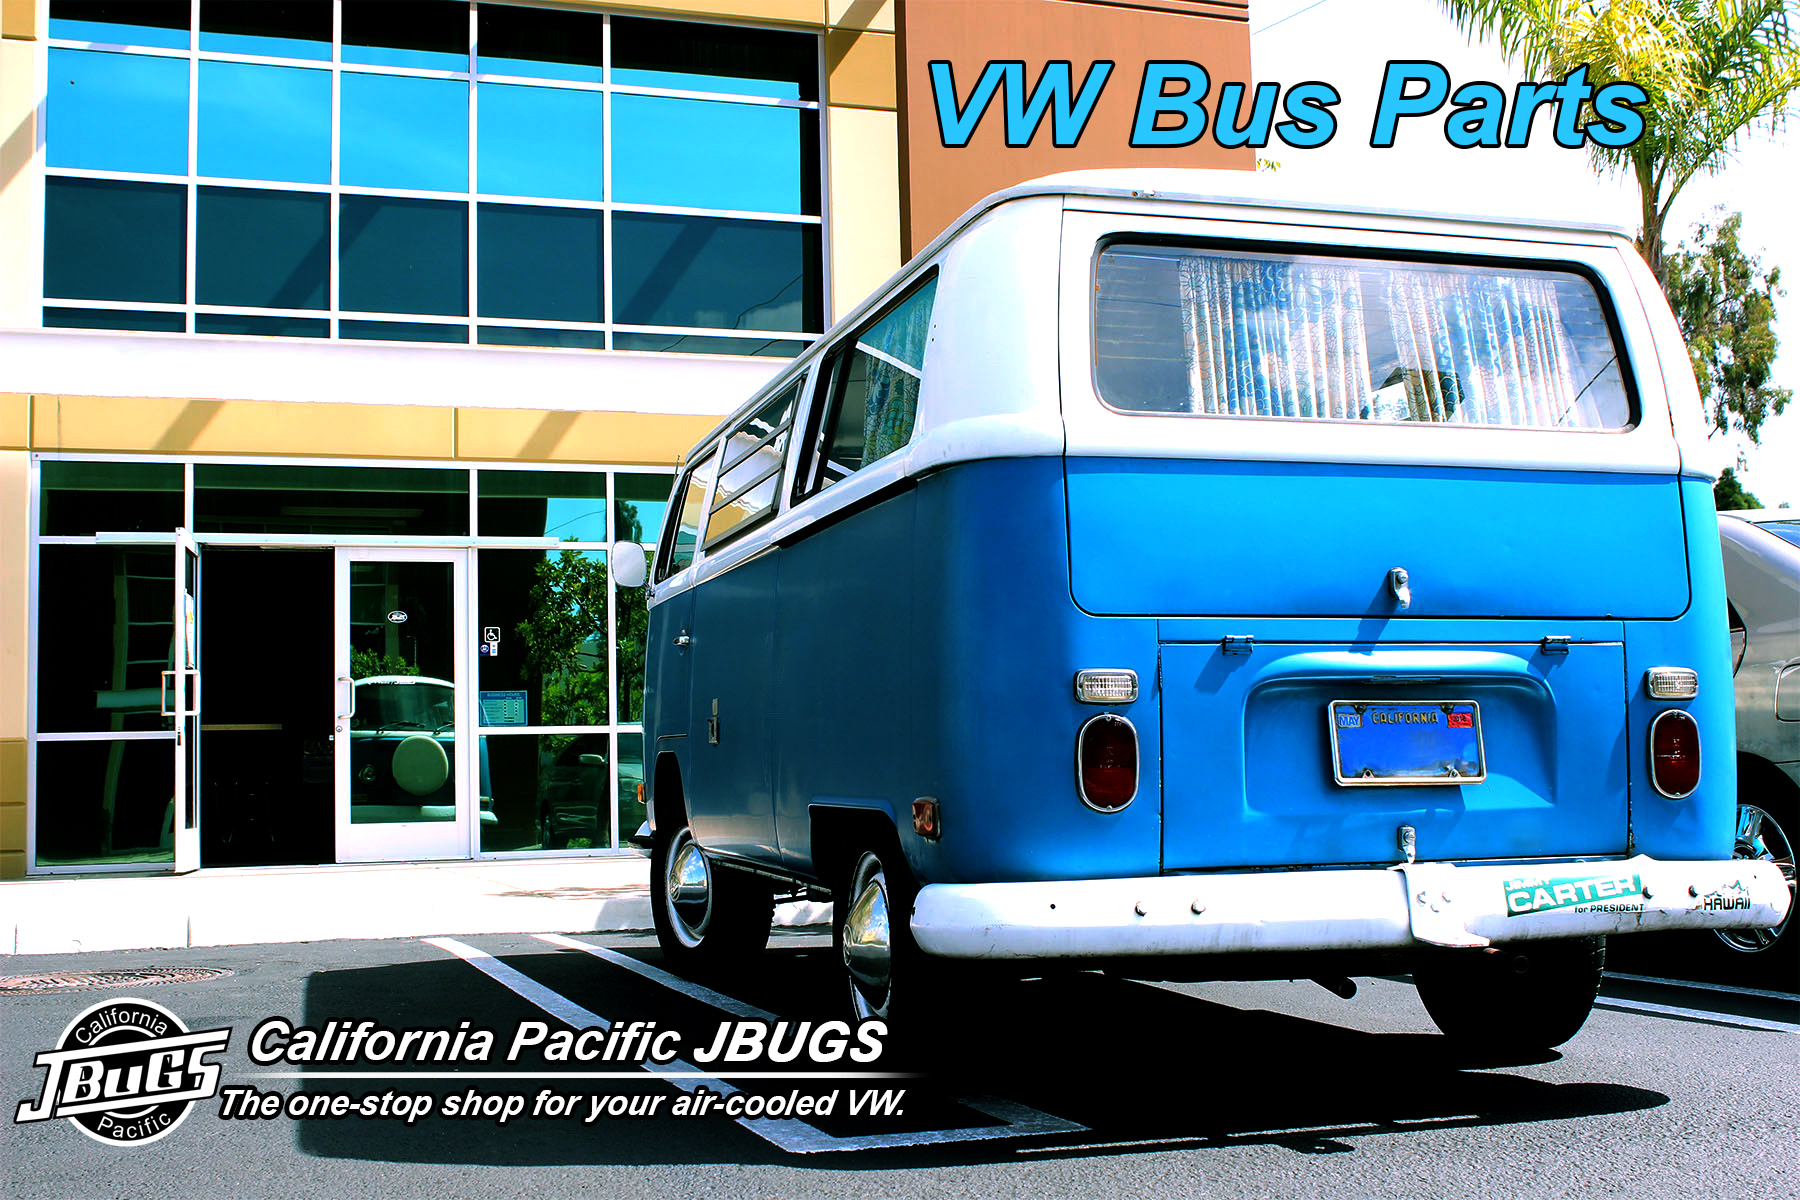 vw bus parts volkswagen bus parts jbugs vw bus parts